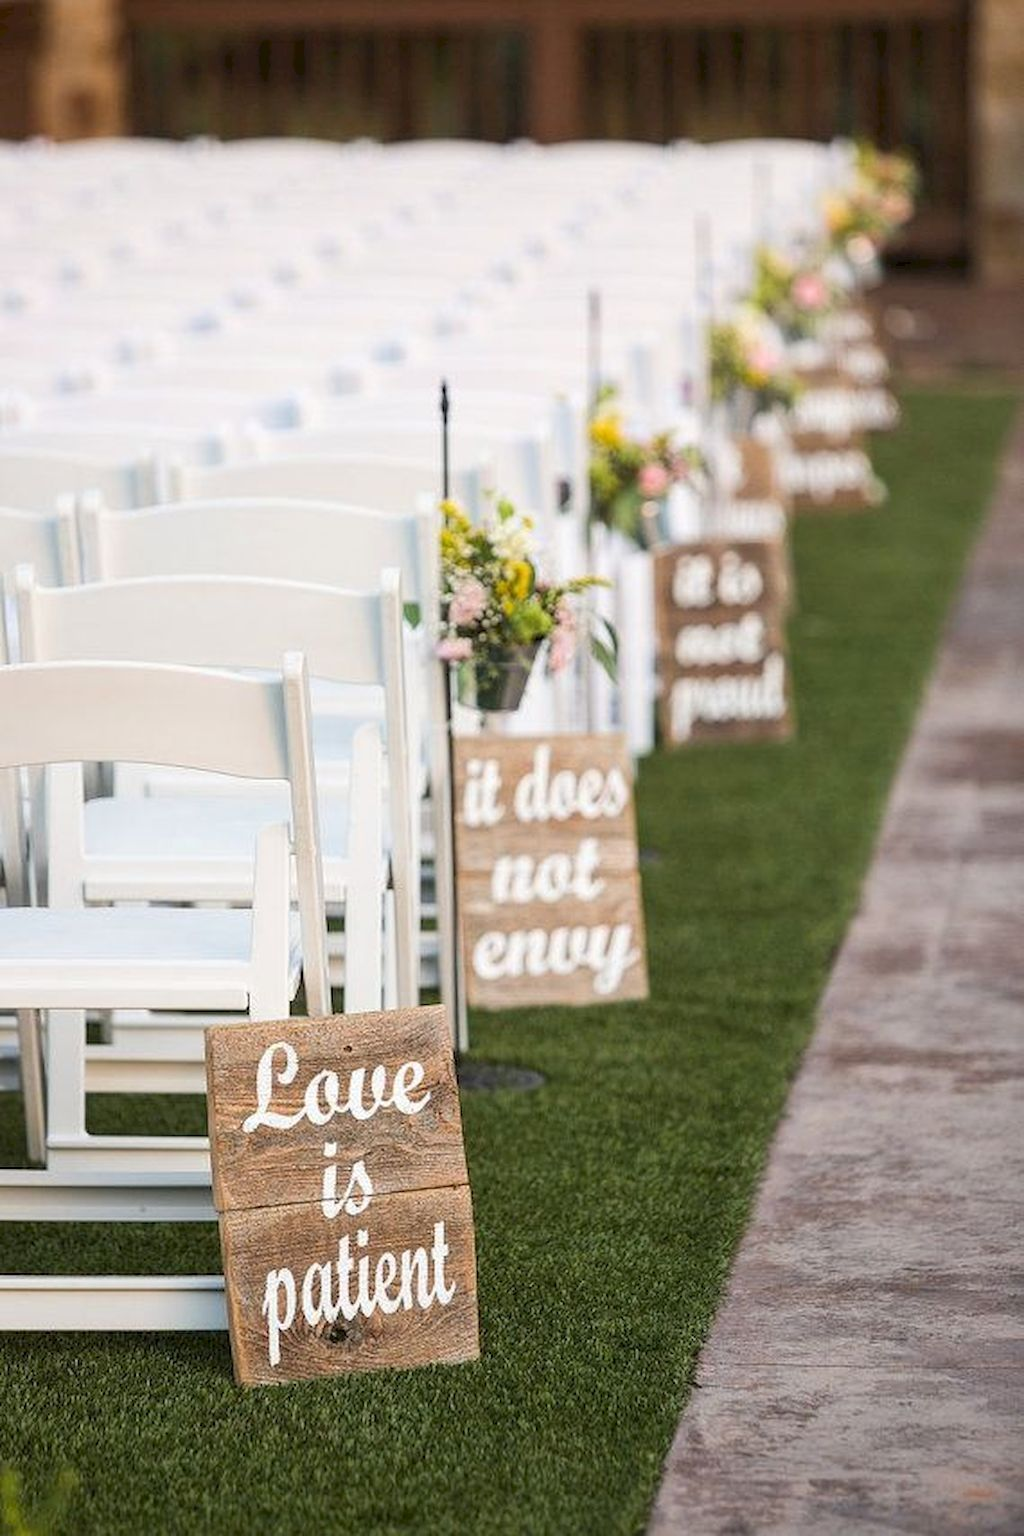 48 Elegant Outdoor Wedding Decor Ideas on A Budget | Weddings ...